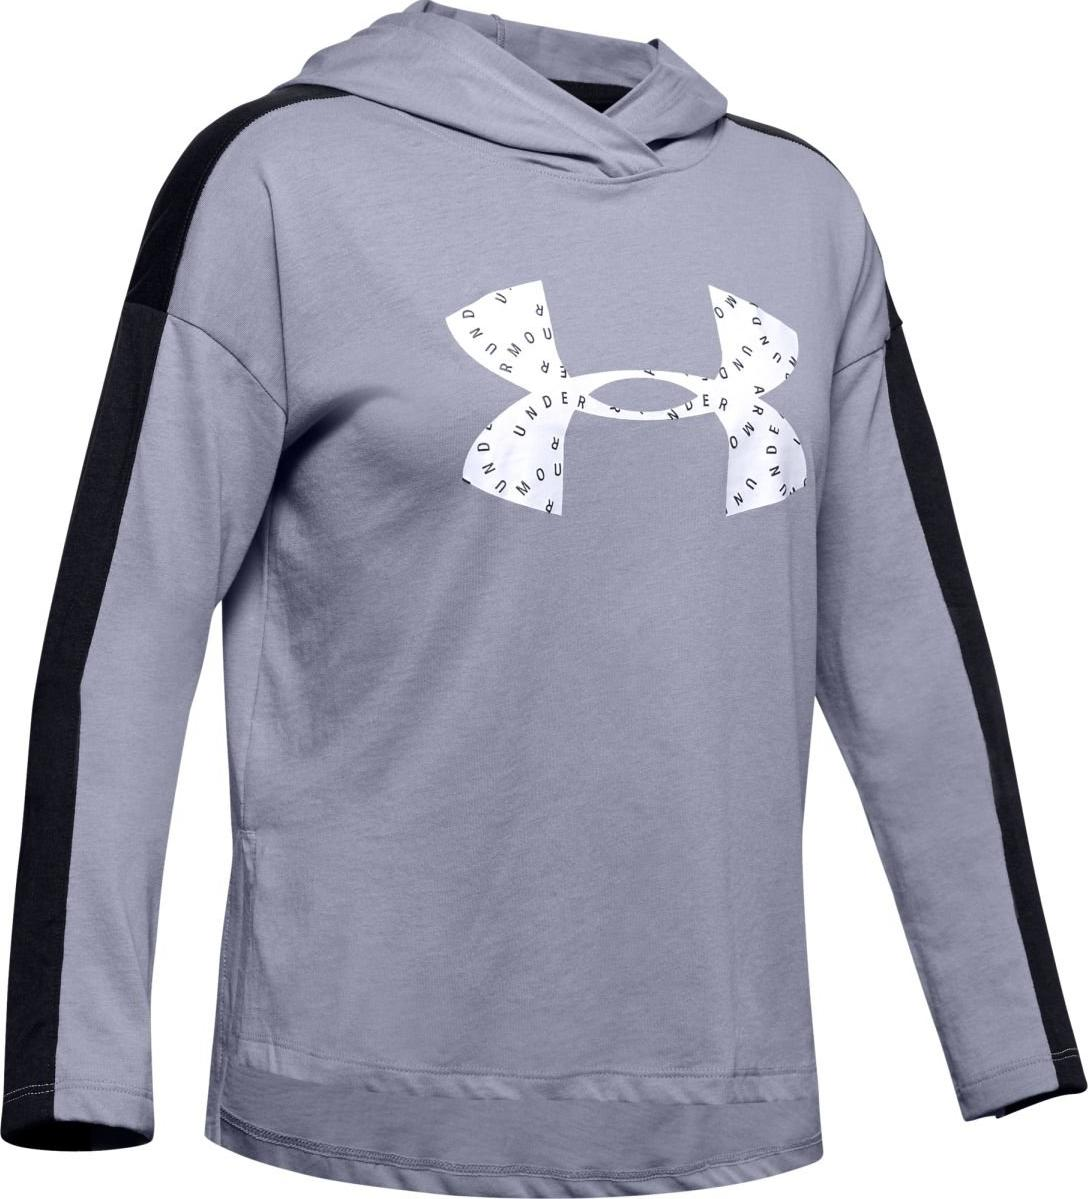 Mikina s kapucňou Under Armour Favorites Jersey Hoodie